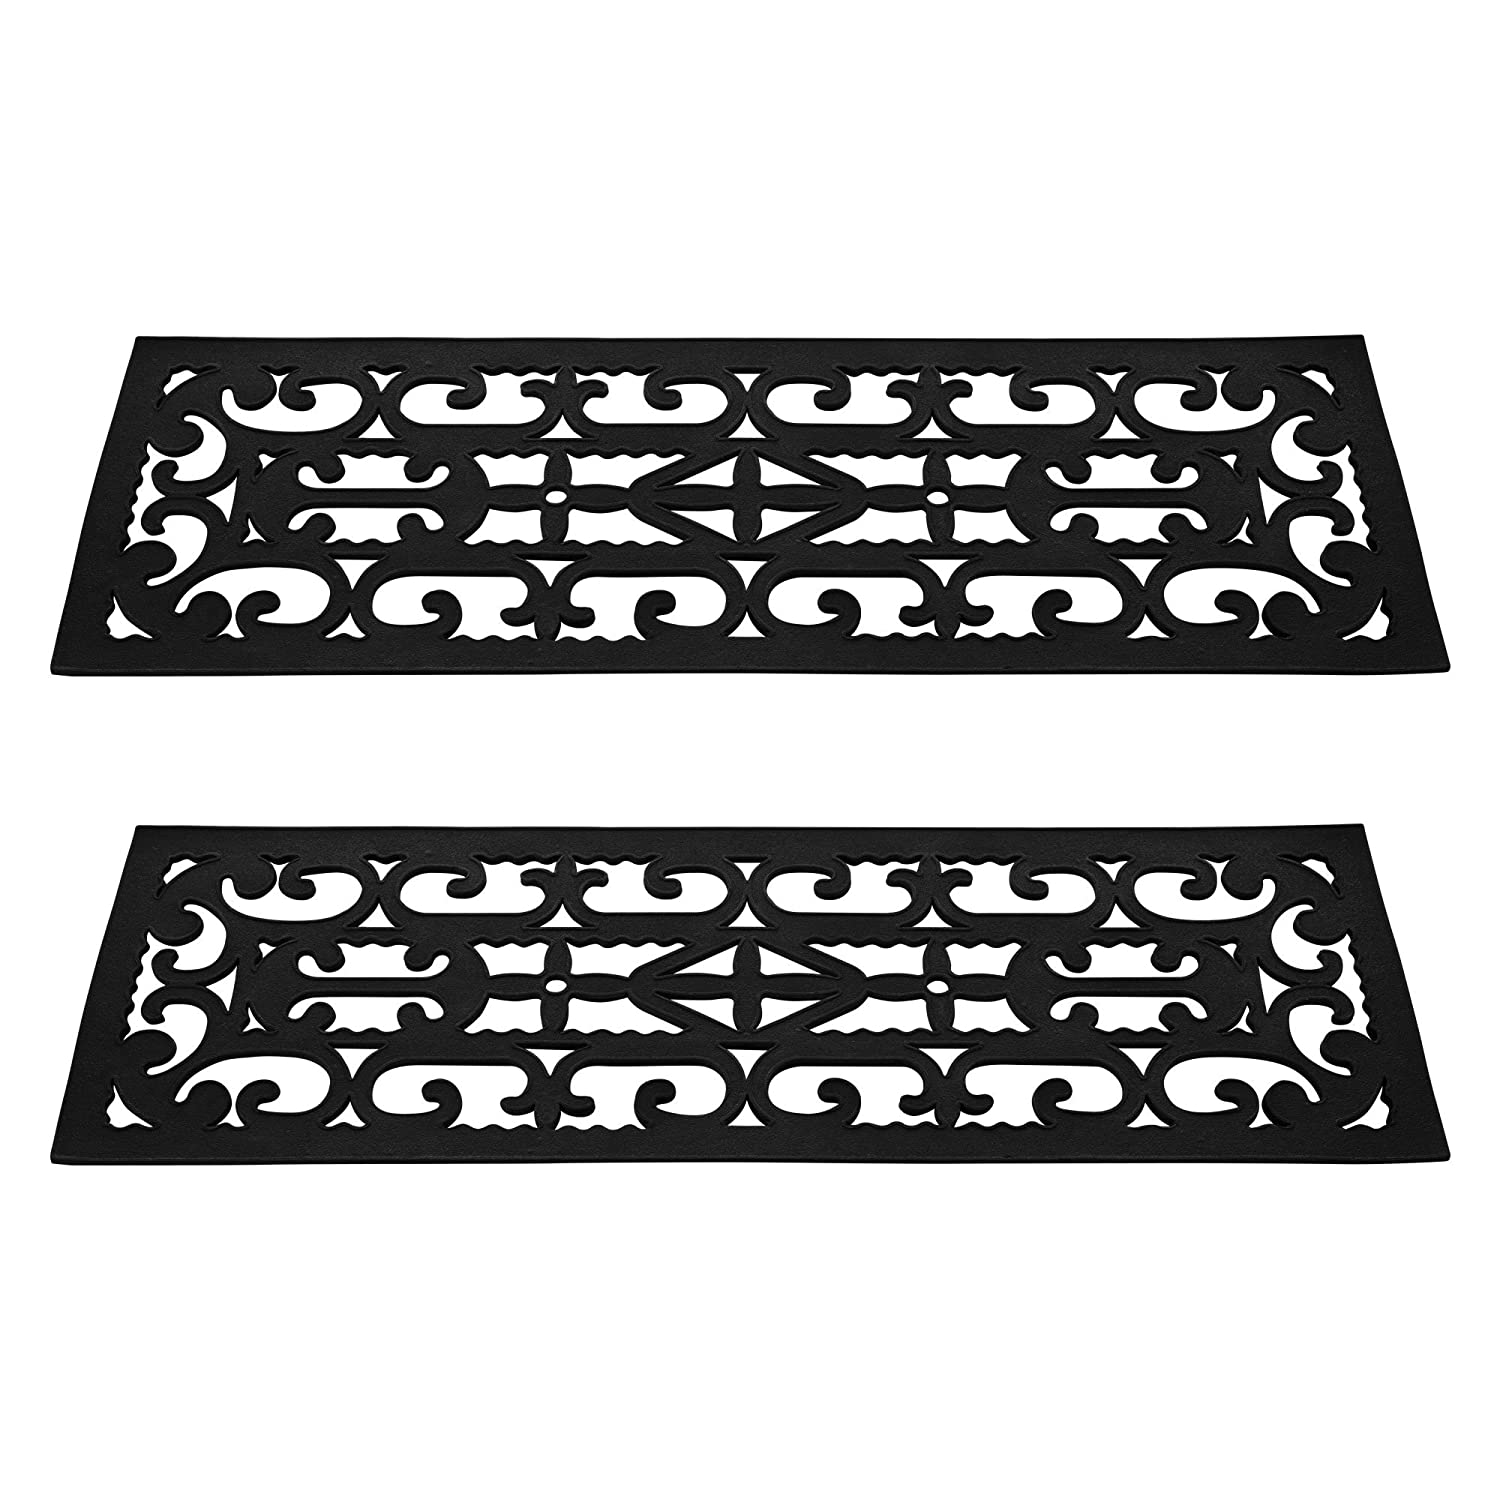 Attractive Non Slip Stair Tread Mats 2 Piece By Pure Garden   Staircase Step Treads    Amazon.com